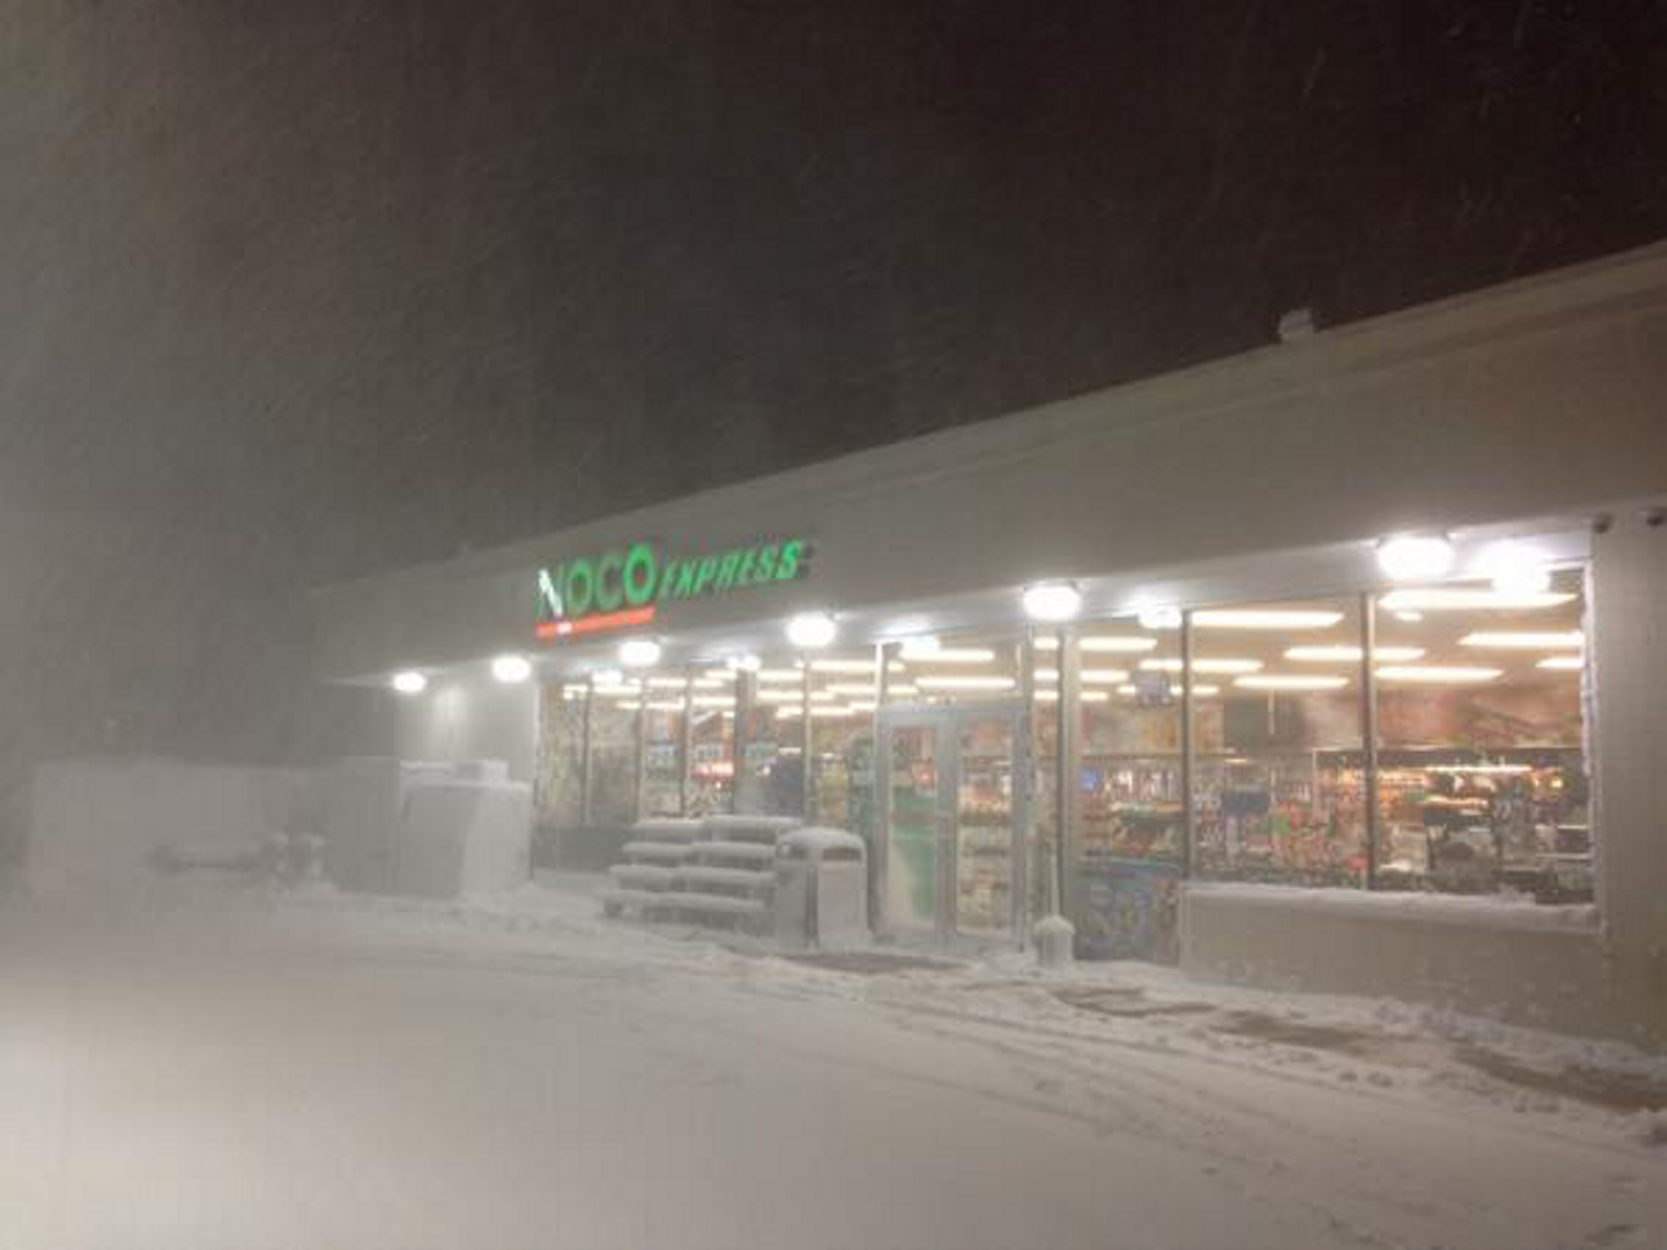 The scene around 3:30 a.m. at the Noco Express on South Park Avenue.